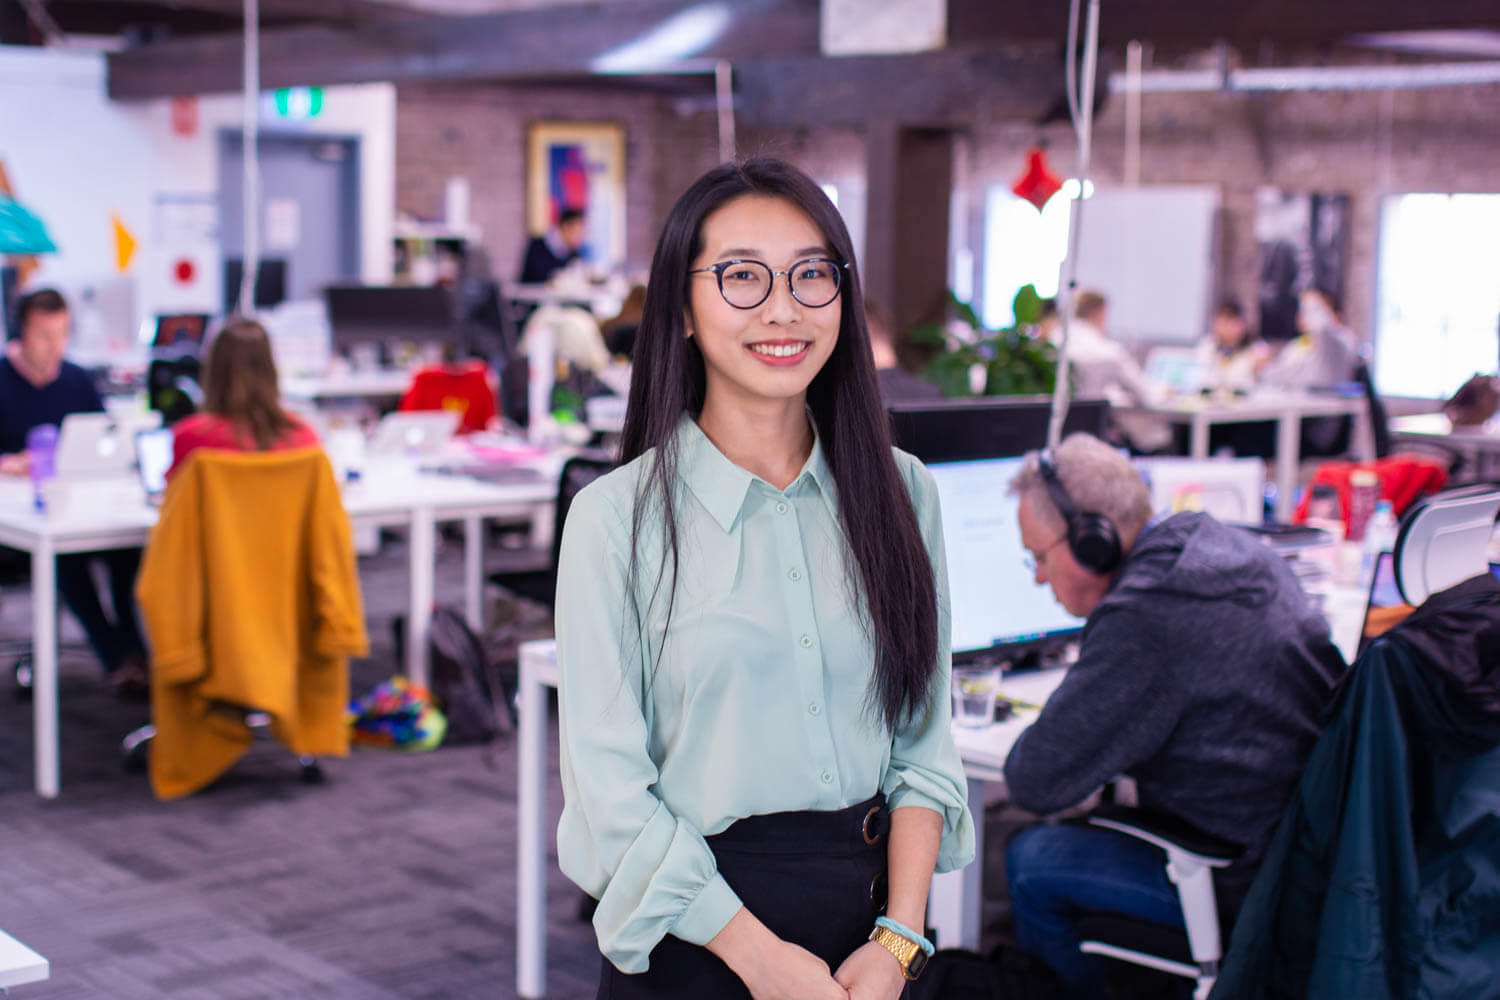 This programme helps international students launch startups in Australia